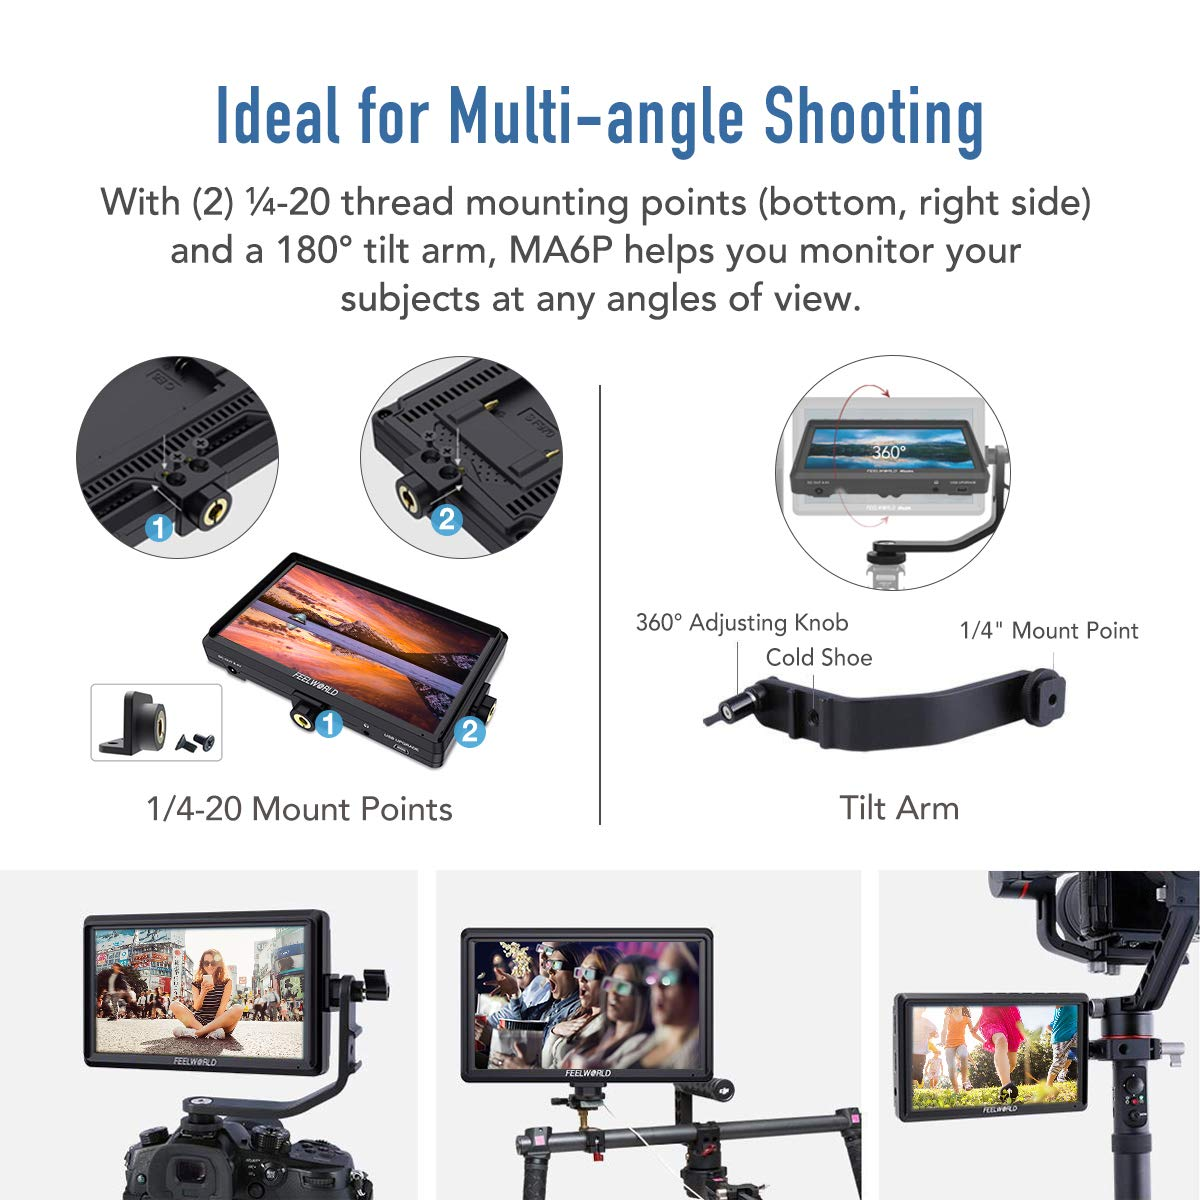 Feelworld Master MA6P DSLR Monitor with 4K HDMI 8.4V DC in/Out, 5.5 Inch Camera Field Monitor Full HD 1920x1080 Peaking Focus Assist Tilt Arm Included by FEELWORLD (Image #5)